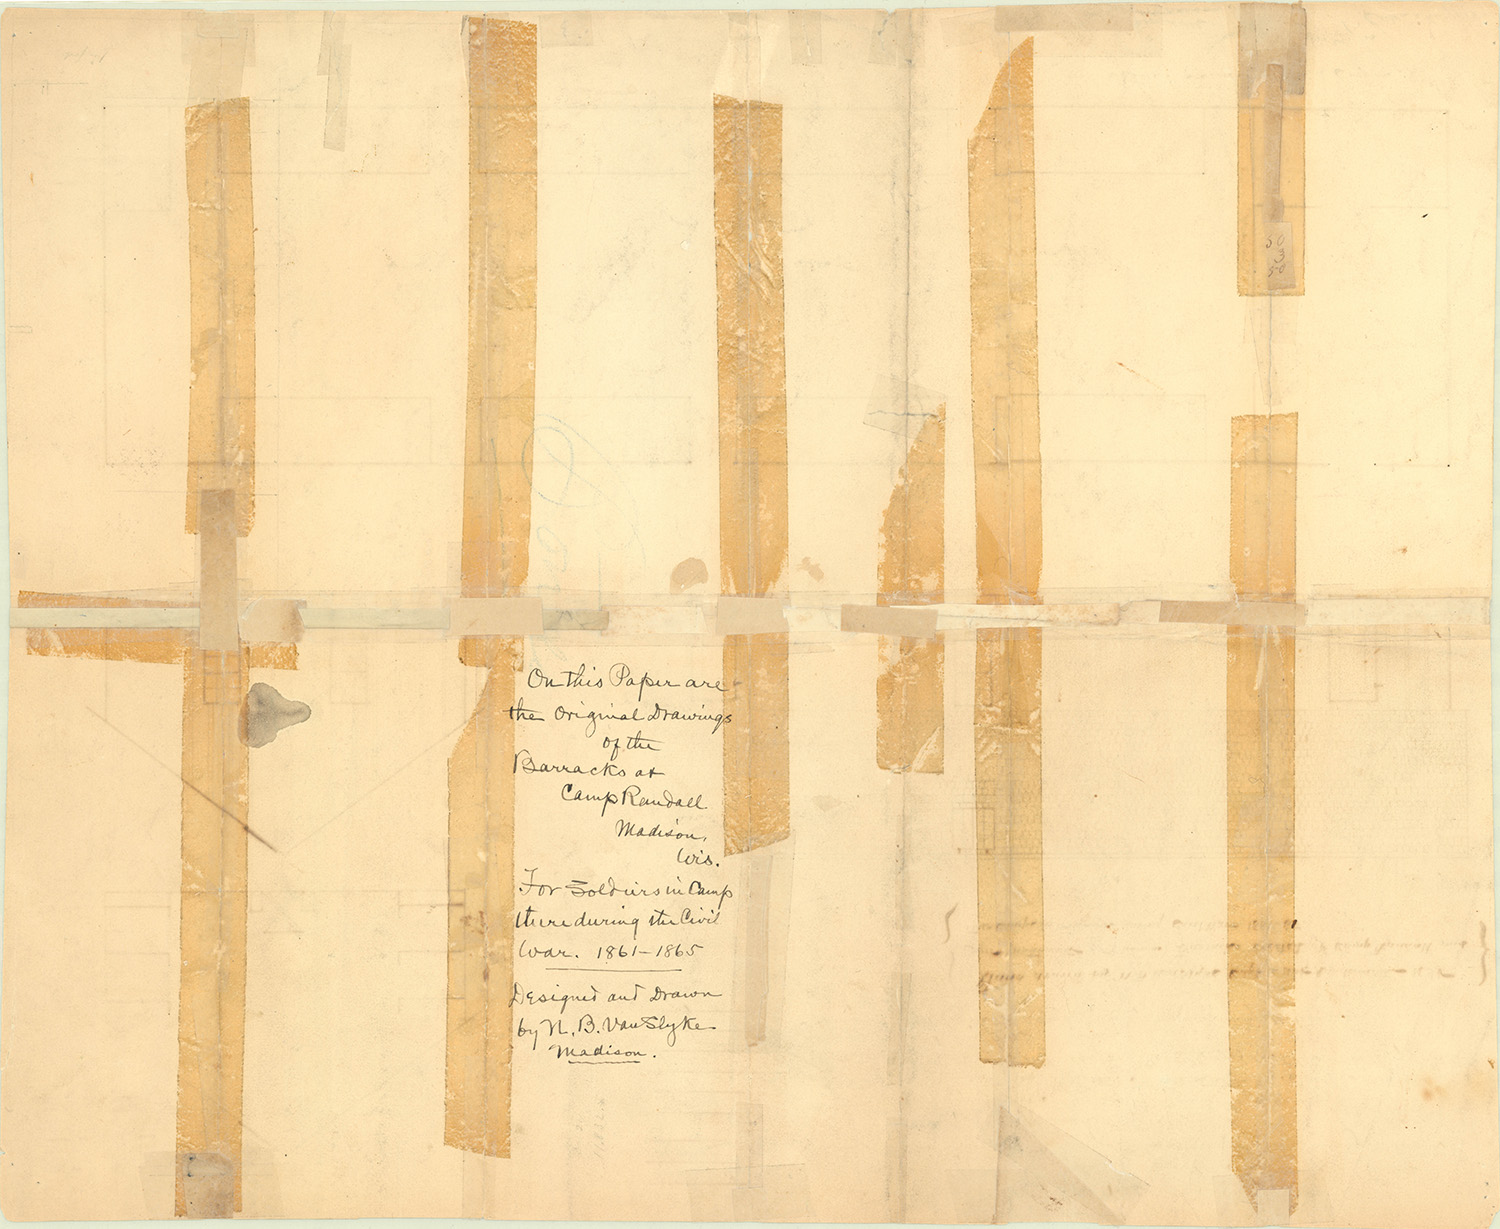 """On this paper are the original Drawings of the Barracks at Camp Randall, Madison, Wis. For Soldiers in Camp there during the Civil War, 1861-1865. Designed and Drawn by N.B. Van Slyke, Madison."""